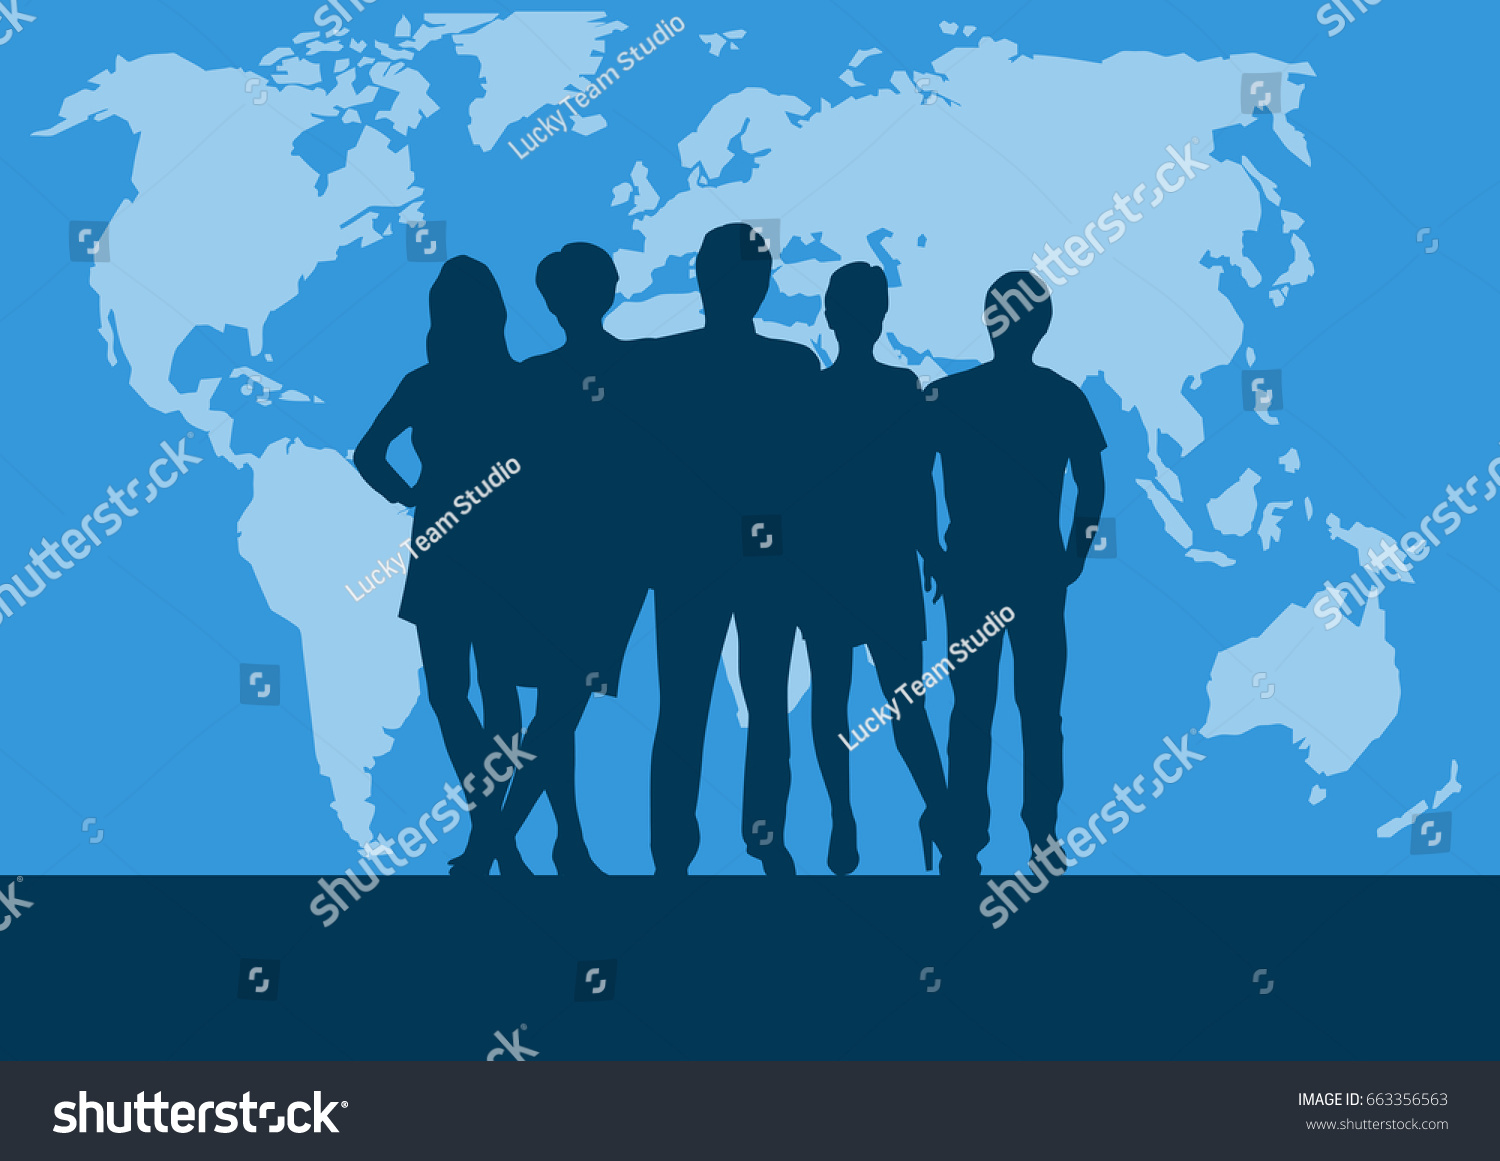 People on world map vector poster stock vector 663356563 people on world map vector poster and background teamwork and business concept gumiabroncs Choice Image